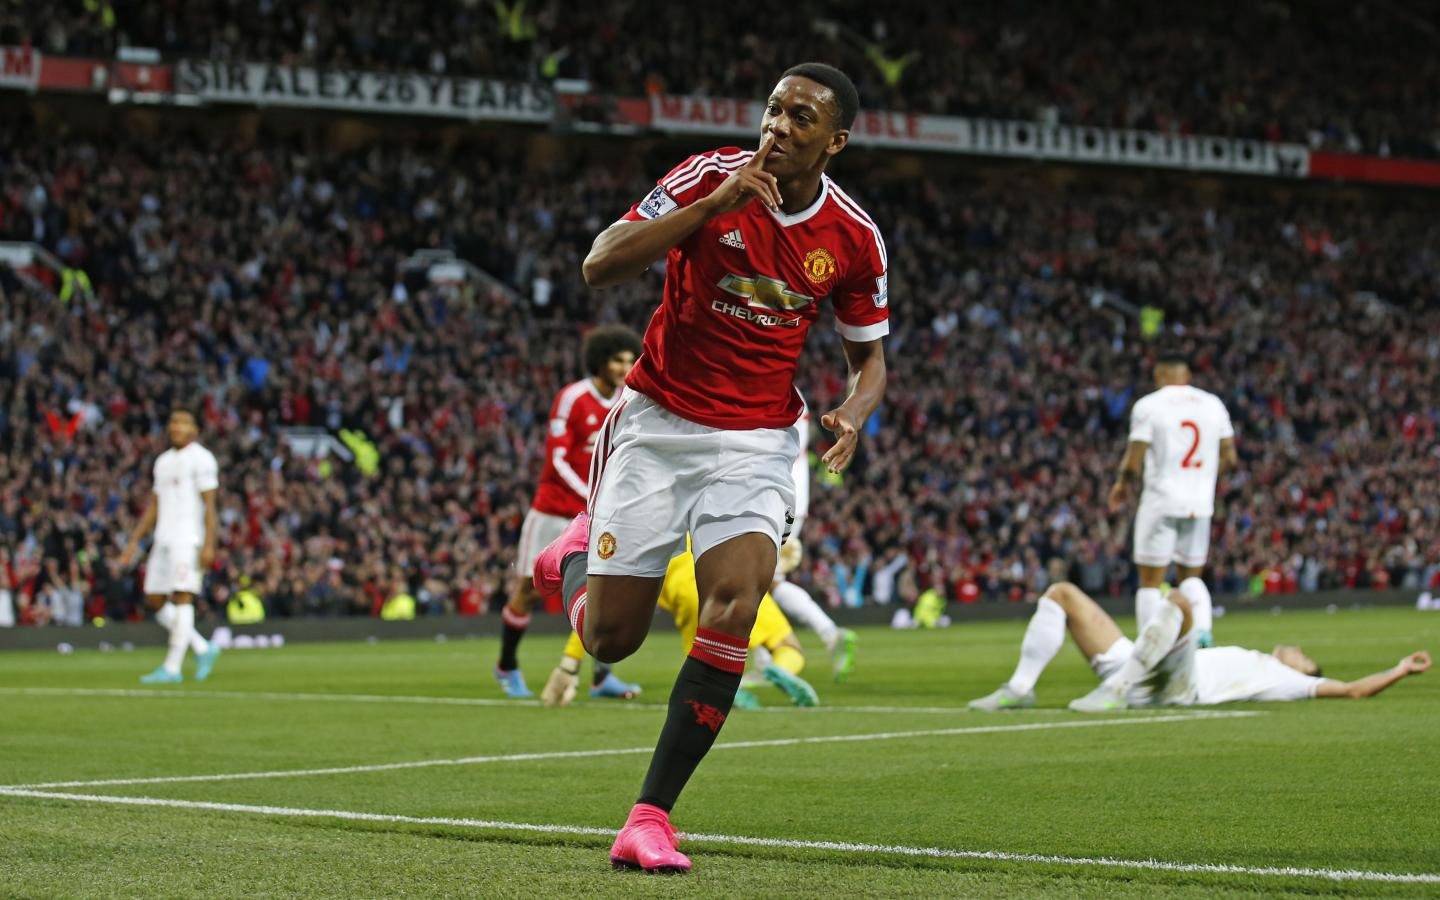 Anthony Martial Manchester United New Player For 2015-2016